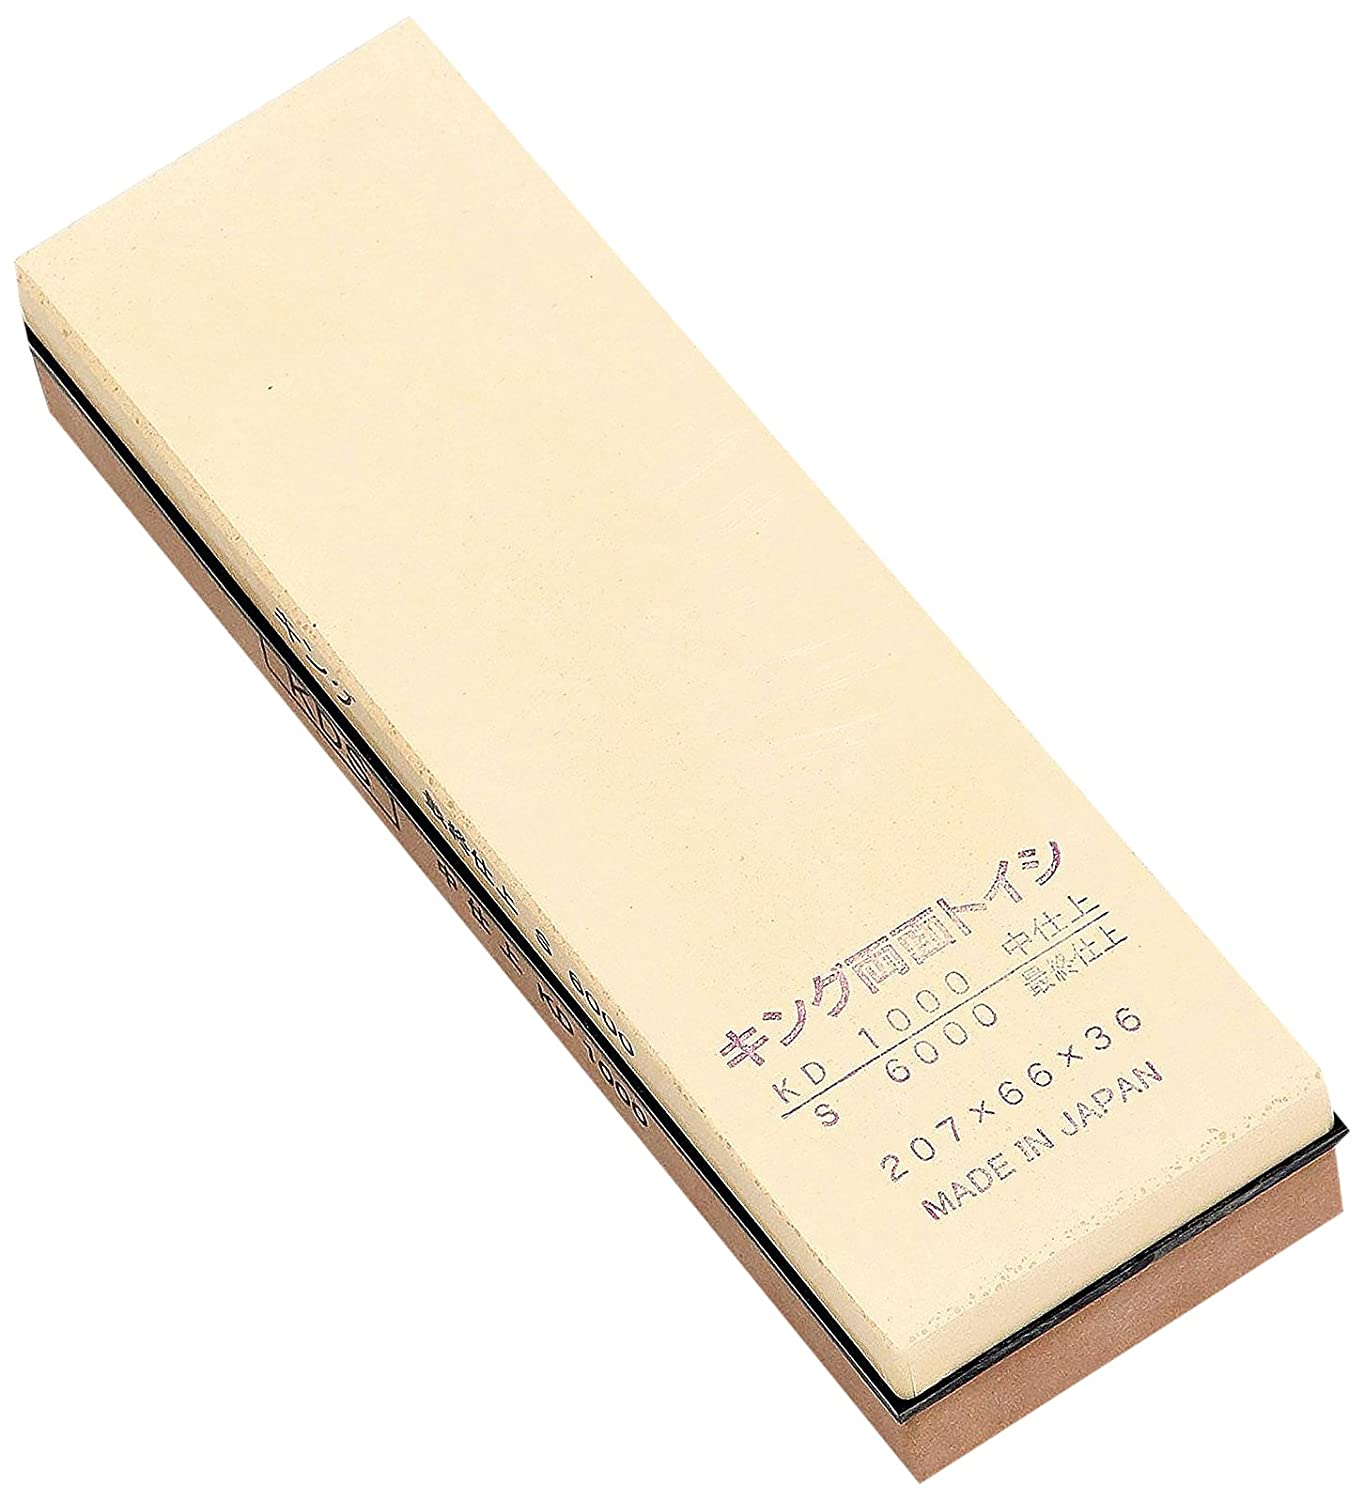 King KDS 1000/6000  Combination Grit Whetstone (Medium) by King kingkds10 7422ah